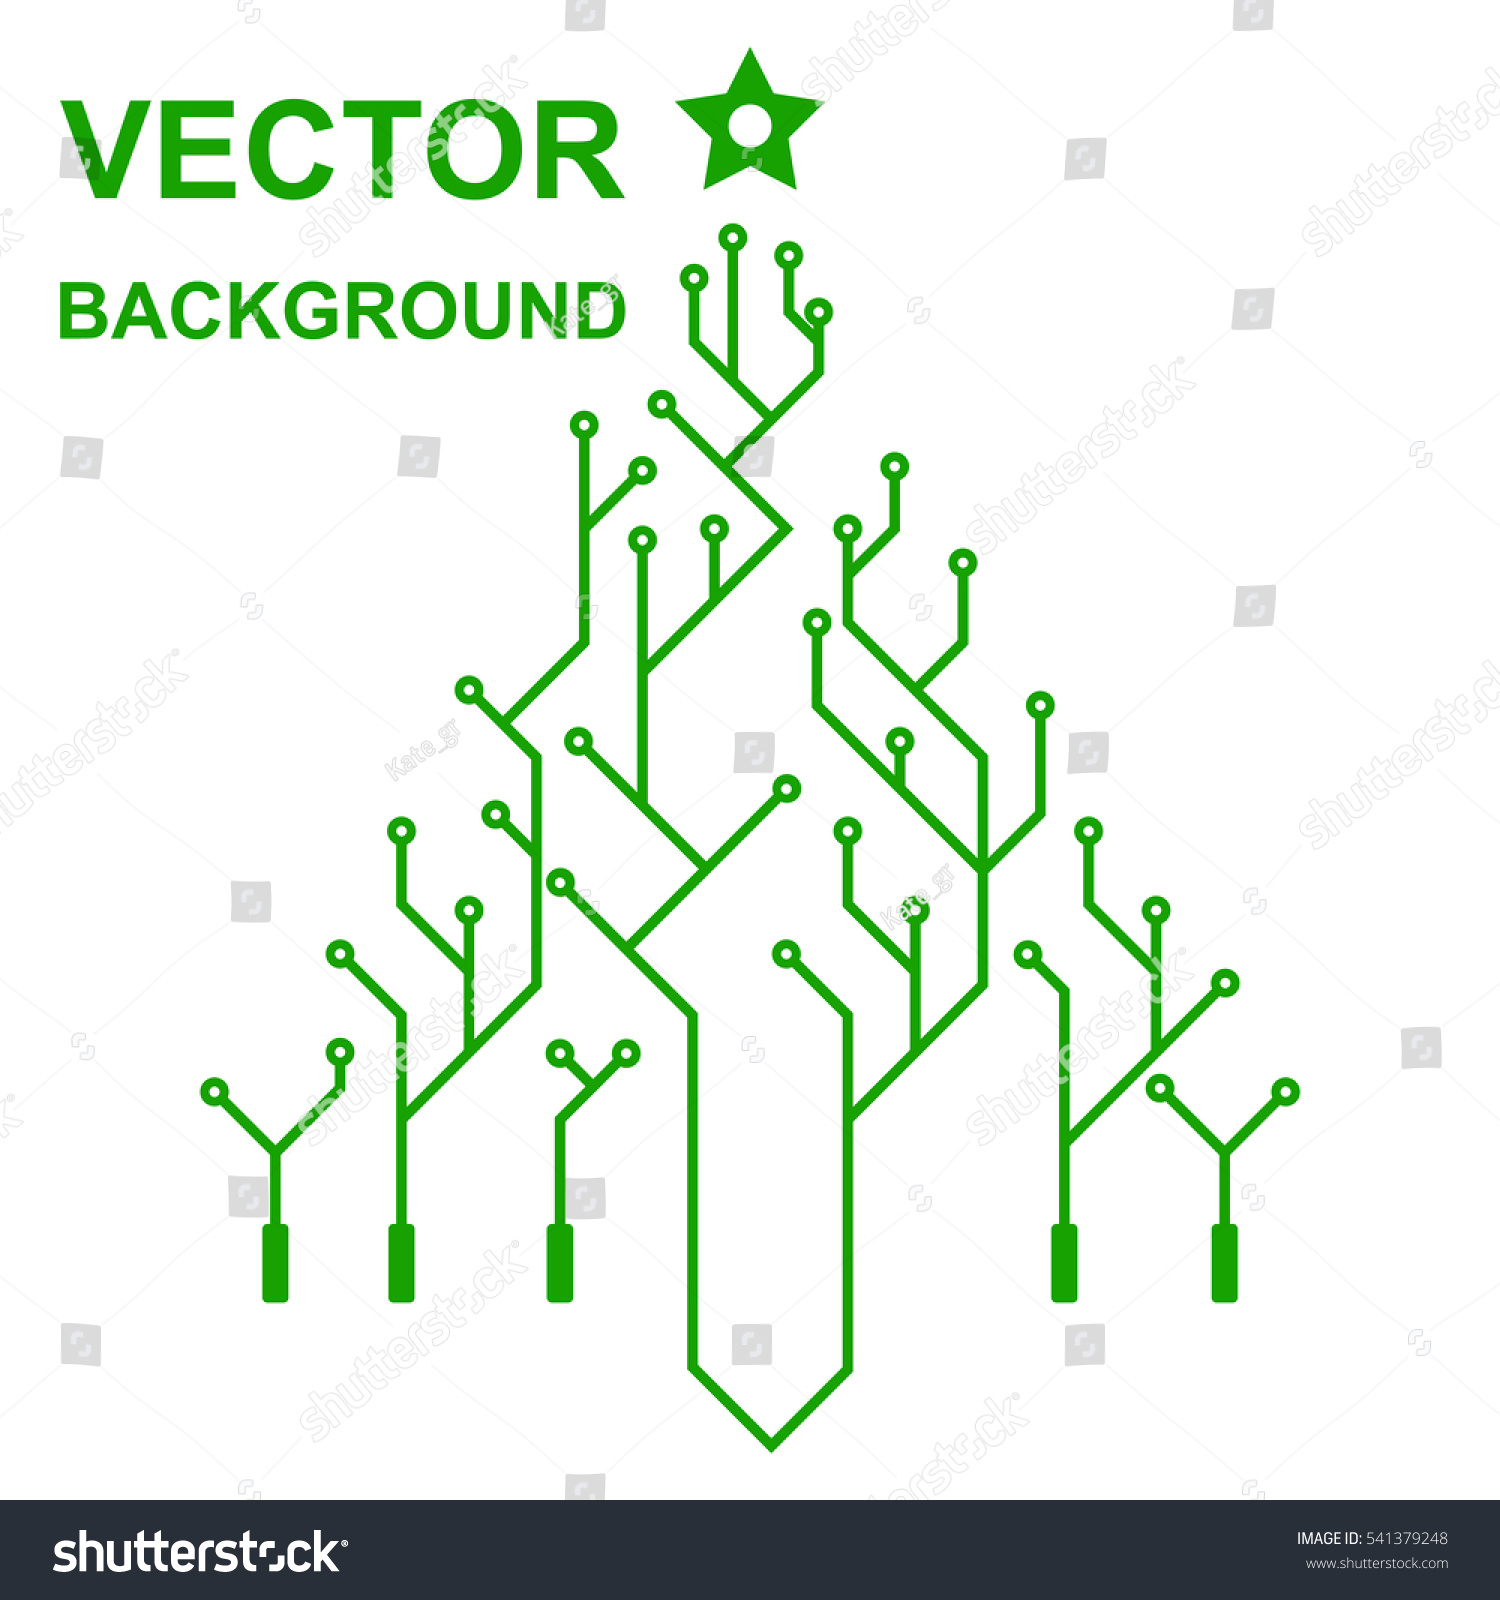 Technology Icon Logo Printed Circuit Board Stock Vector Royalty Of Illustration A Green With Christmas Tree New Year Flat Design